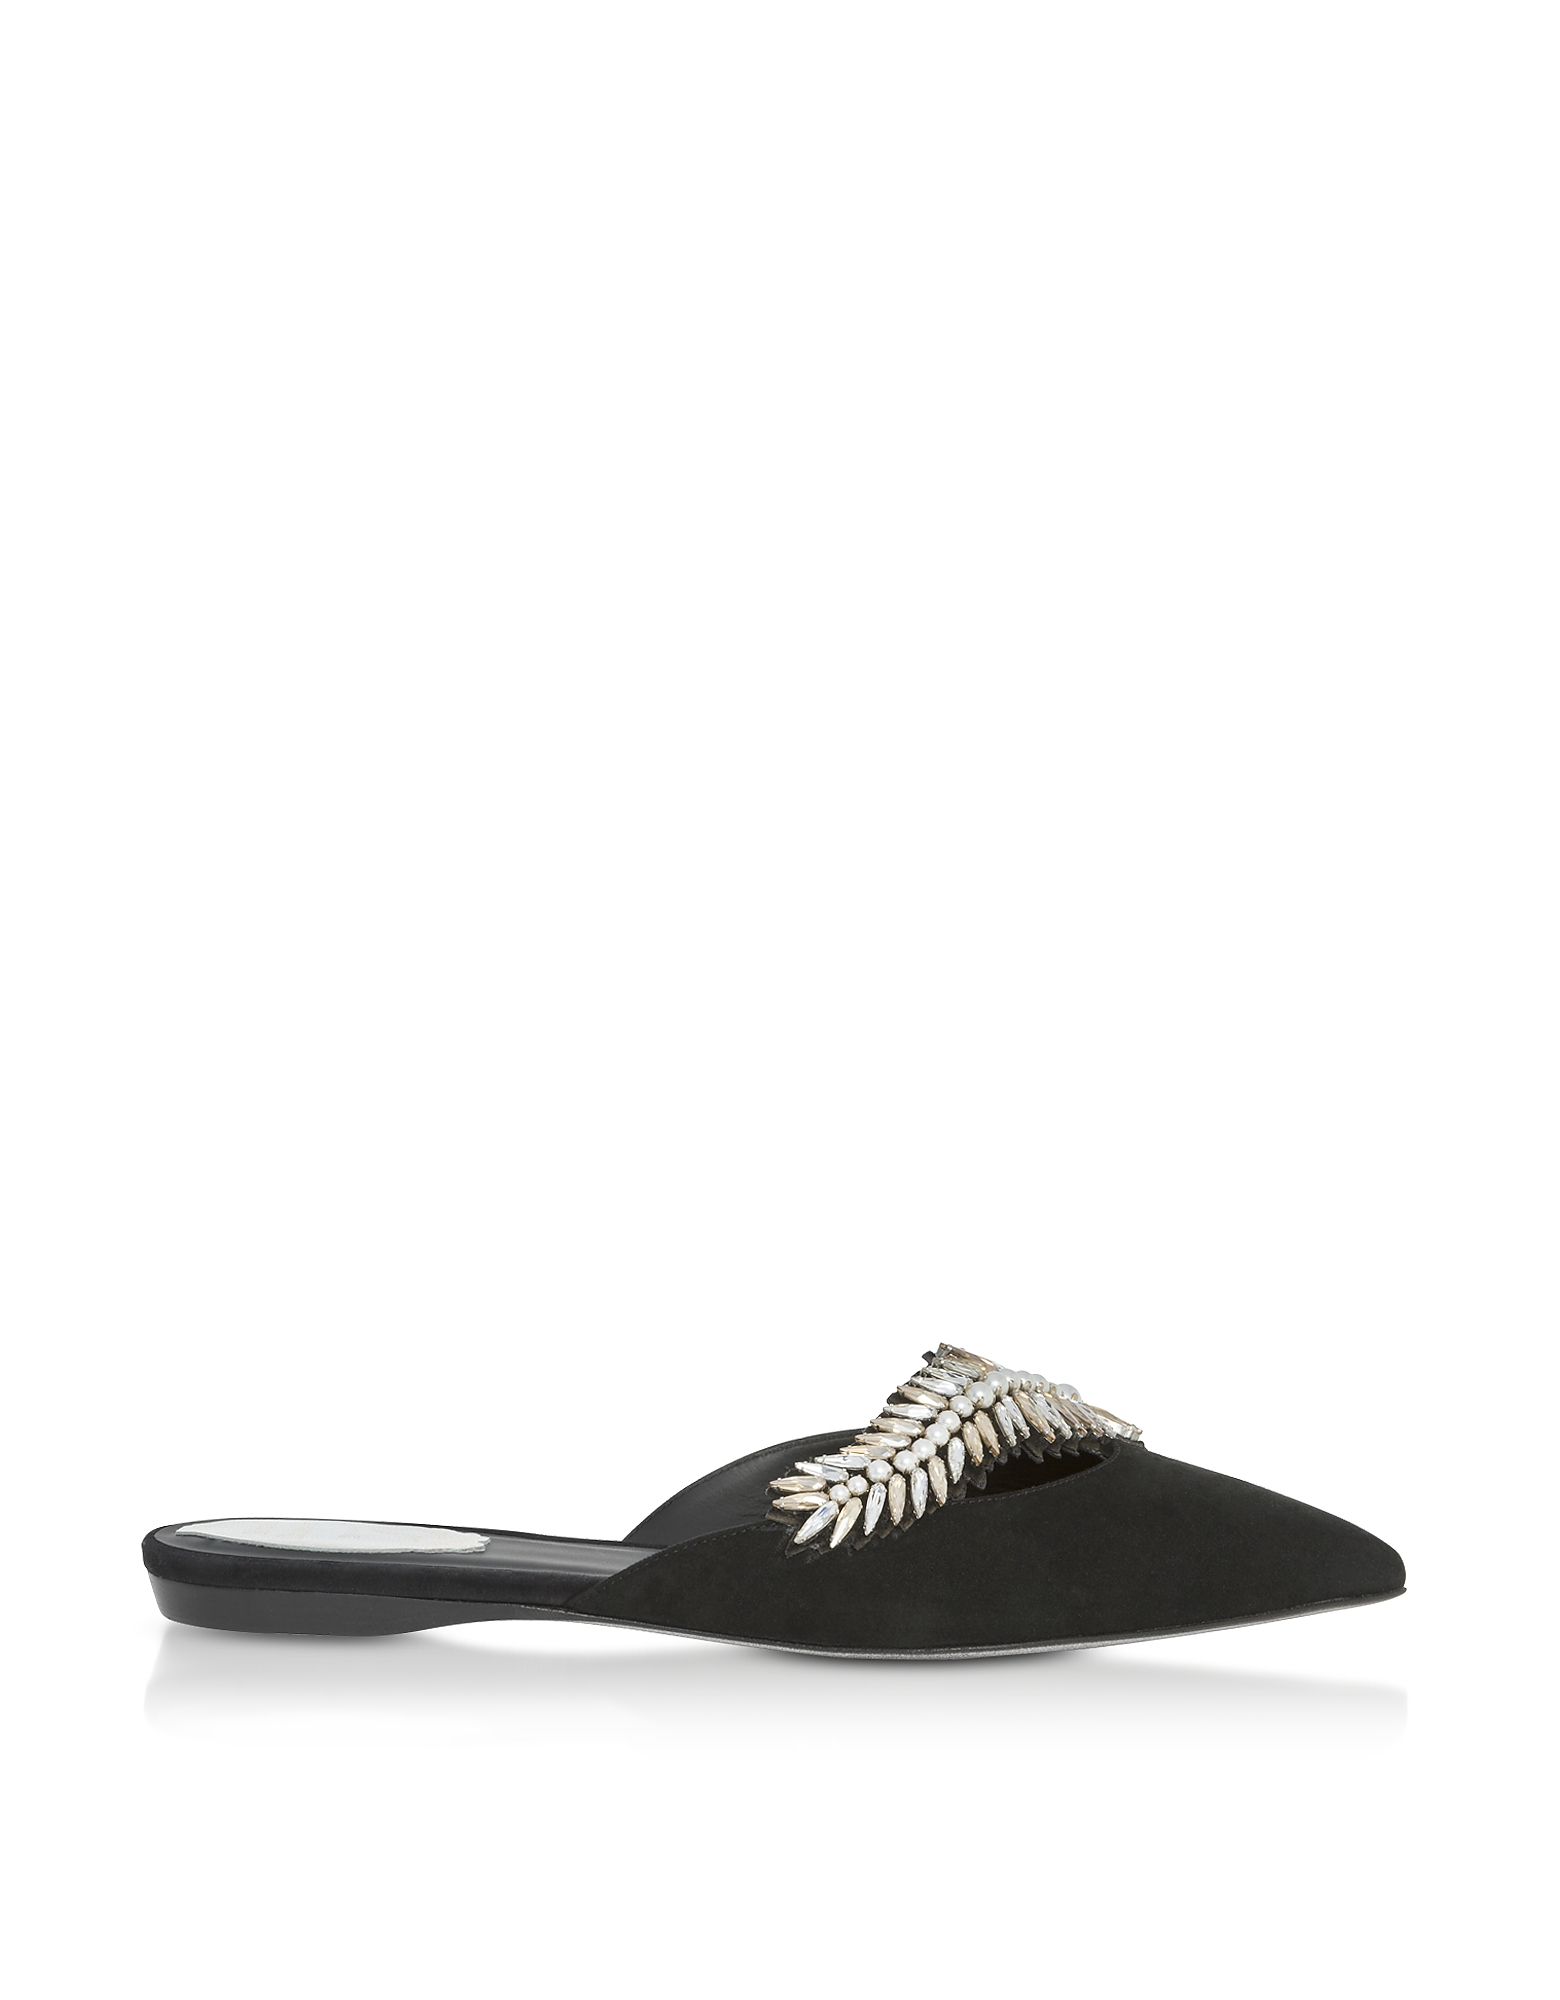 Rene Caovilla Shoes, Black Suede and Crystals Pointy Mules